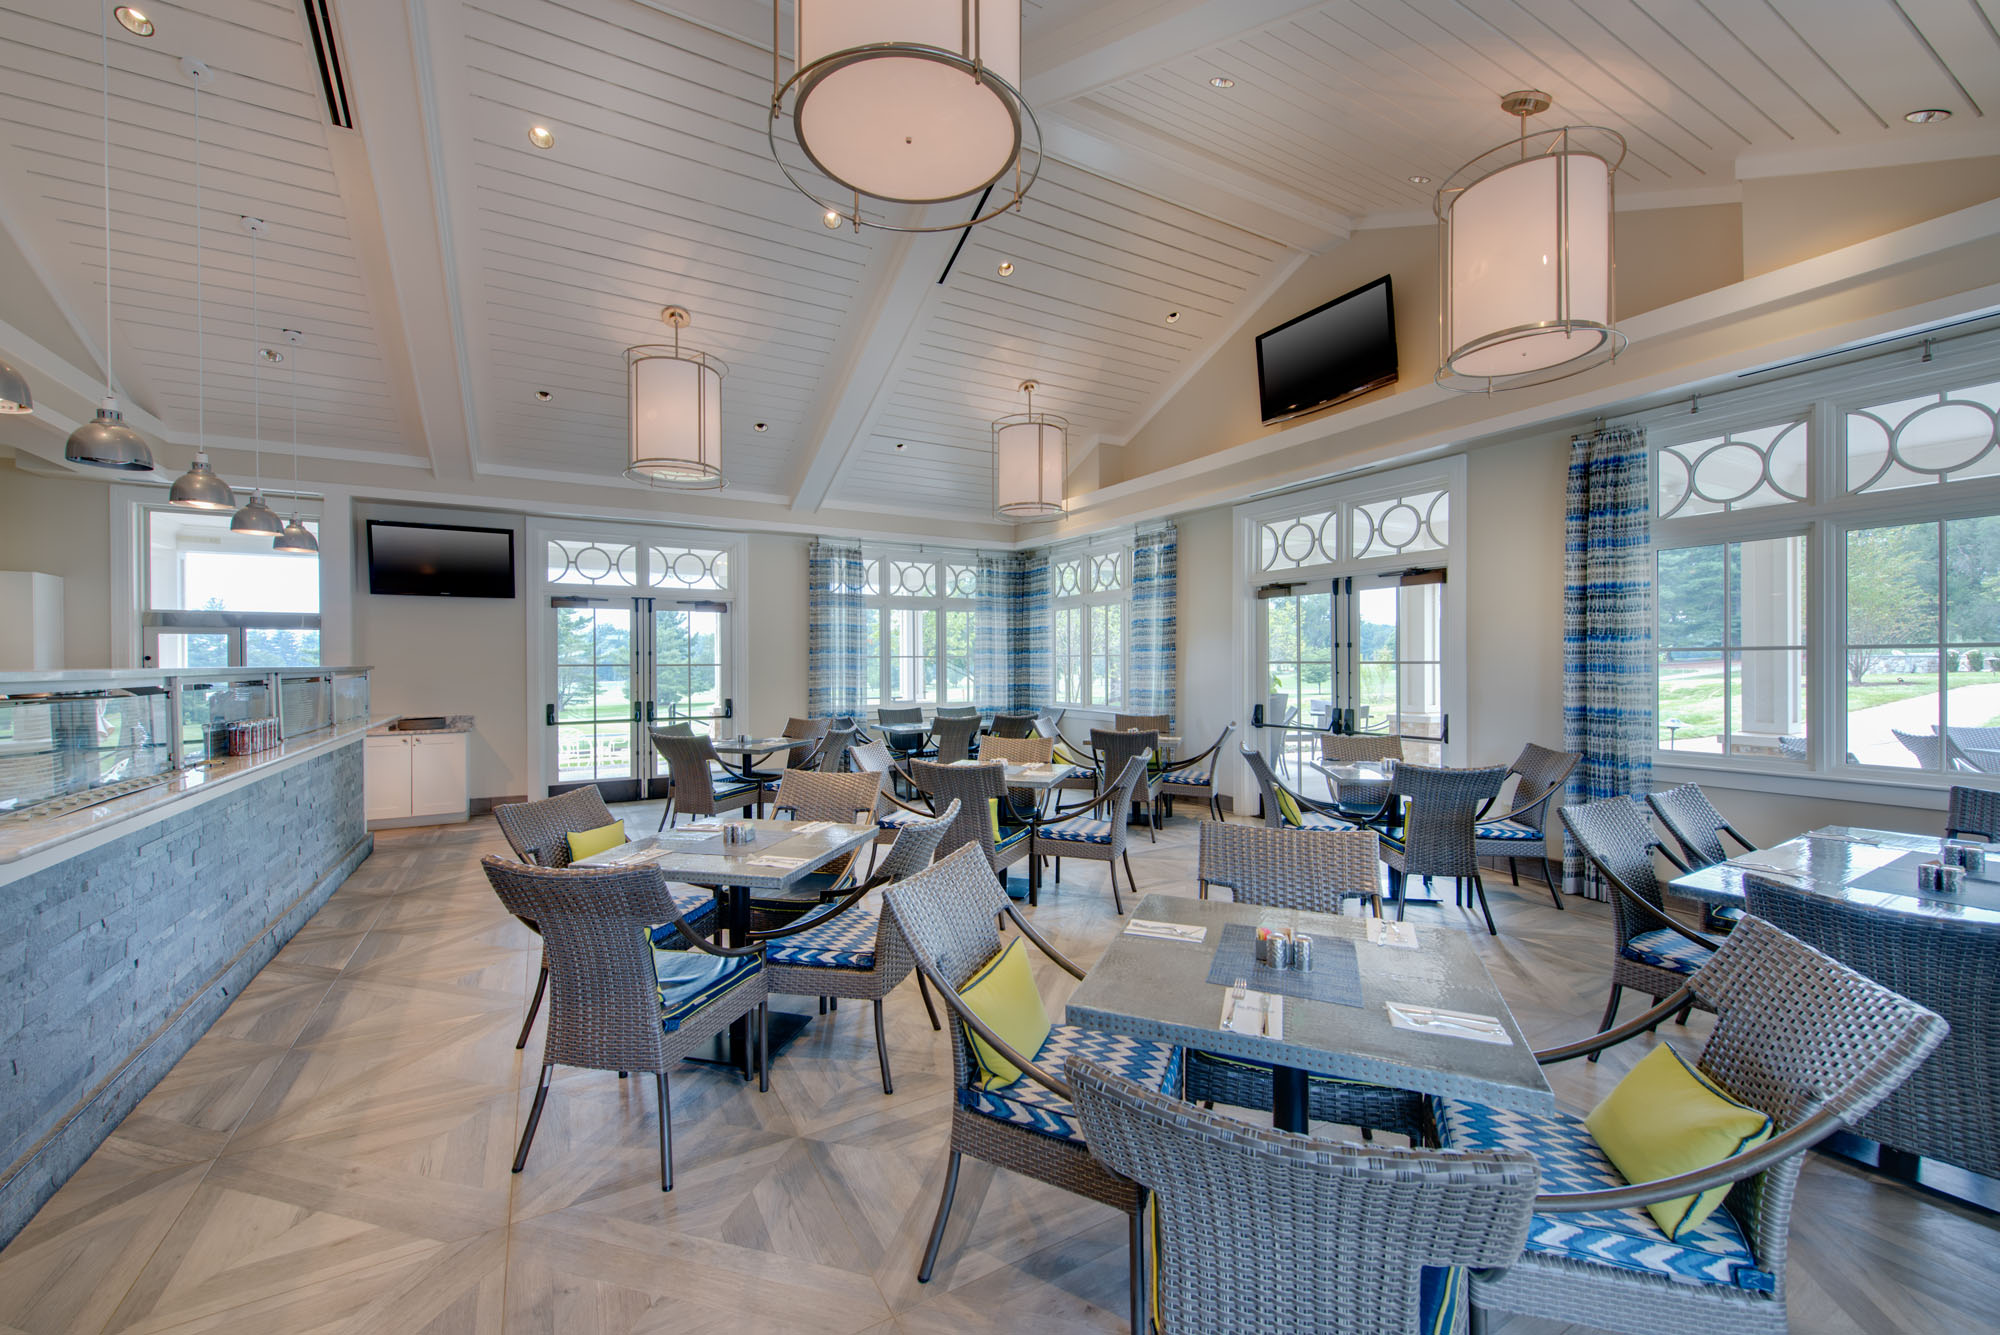 Woodmont Country Club Interior Image202787.jpg